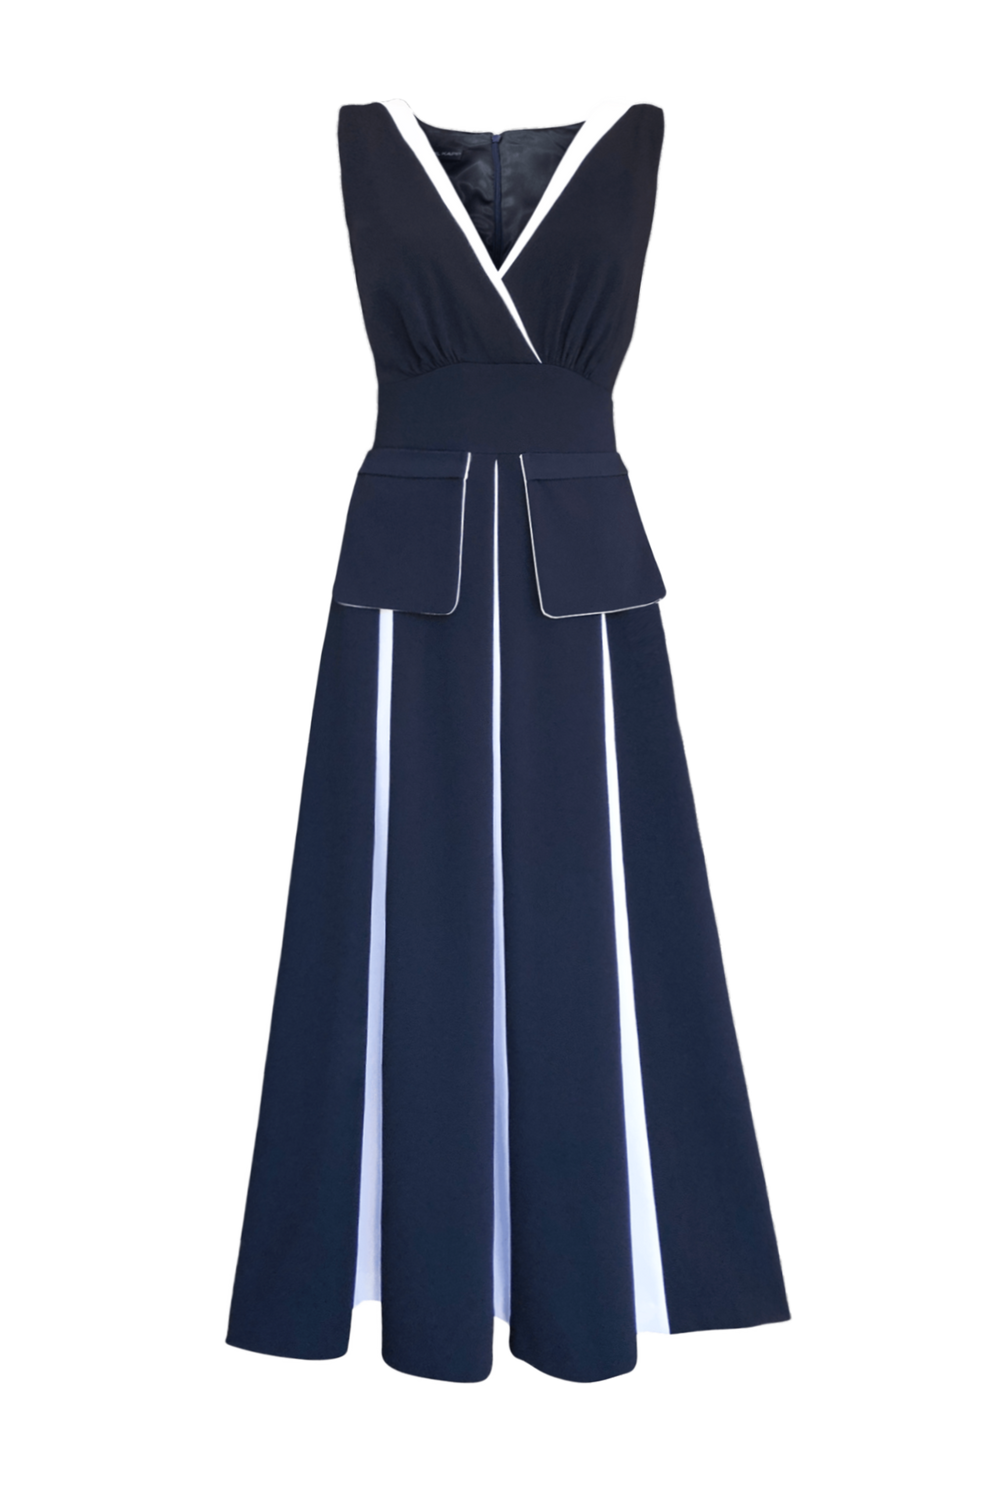 Fashion Designer CARL KAPP collection | Bella Dress Navy | Sydney Australia